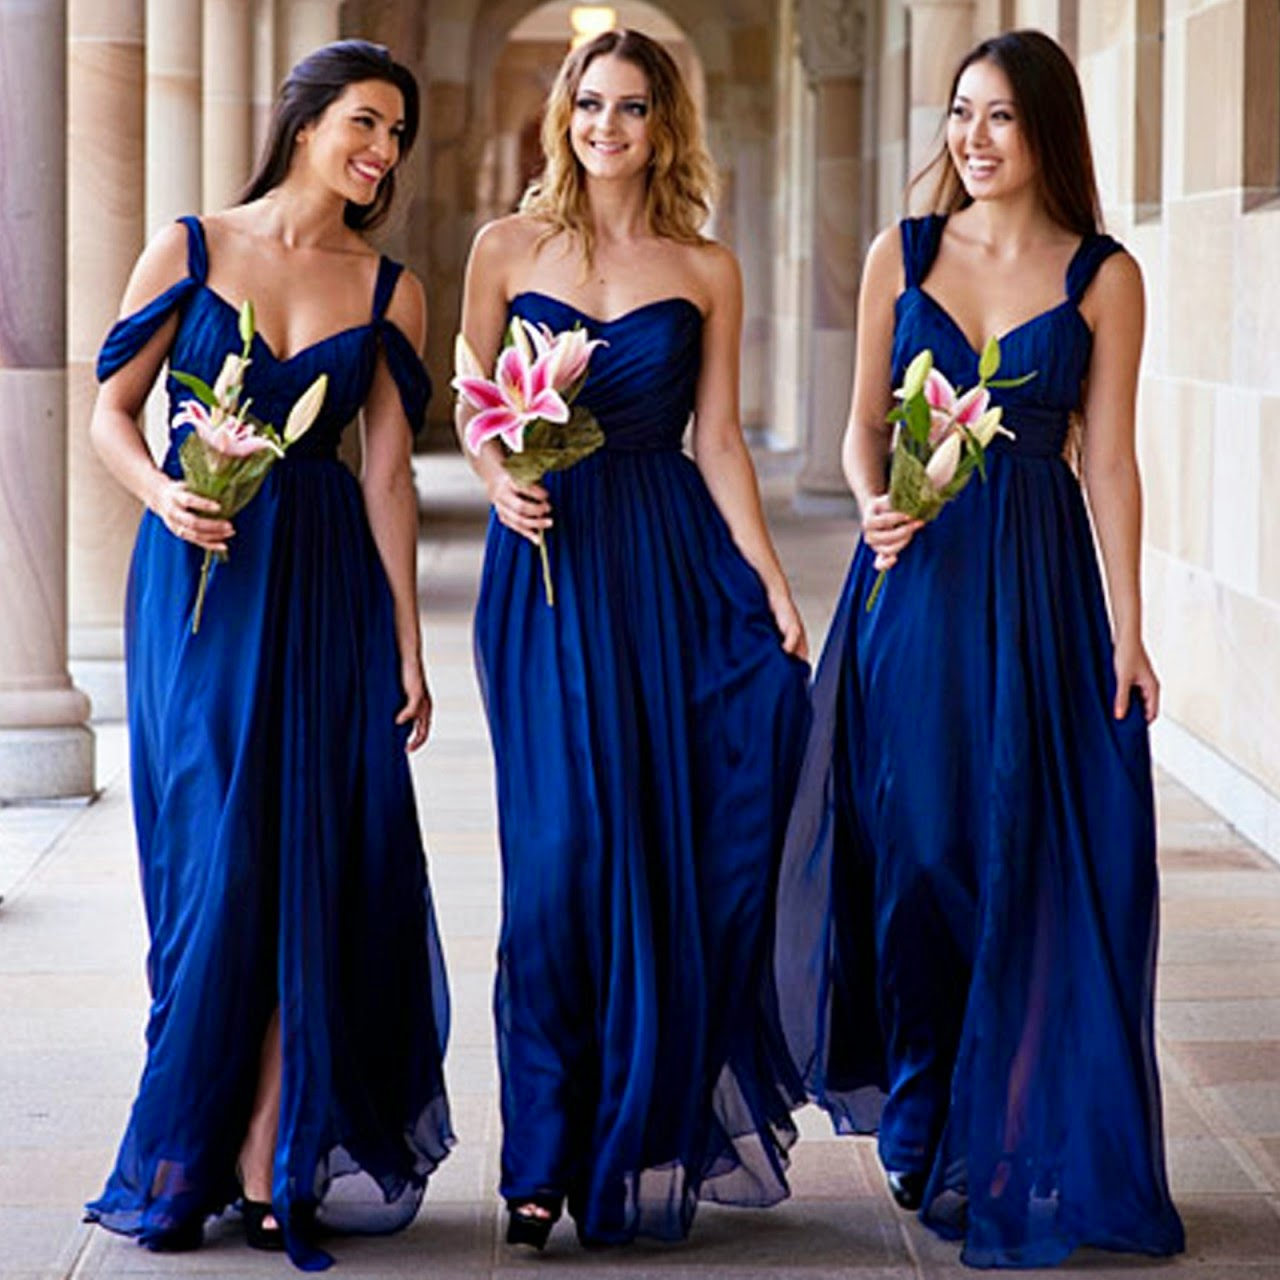 About Navy Bridesmaid Dresses